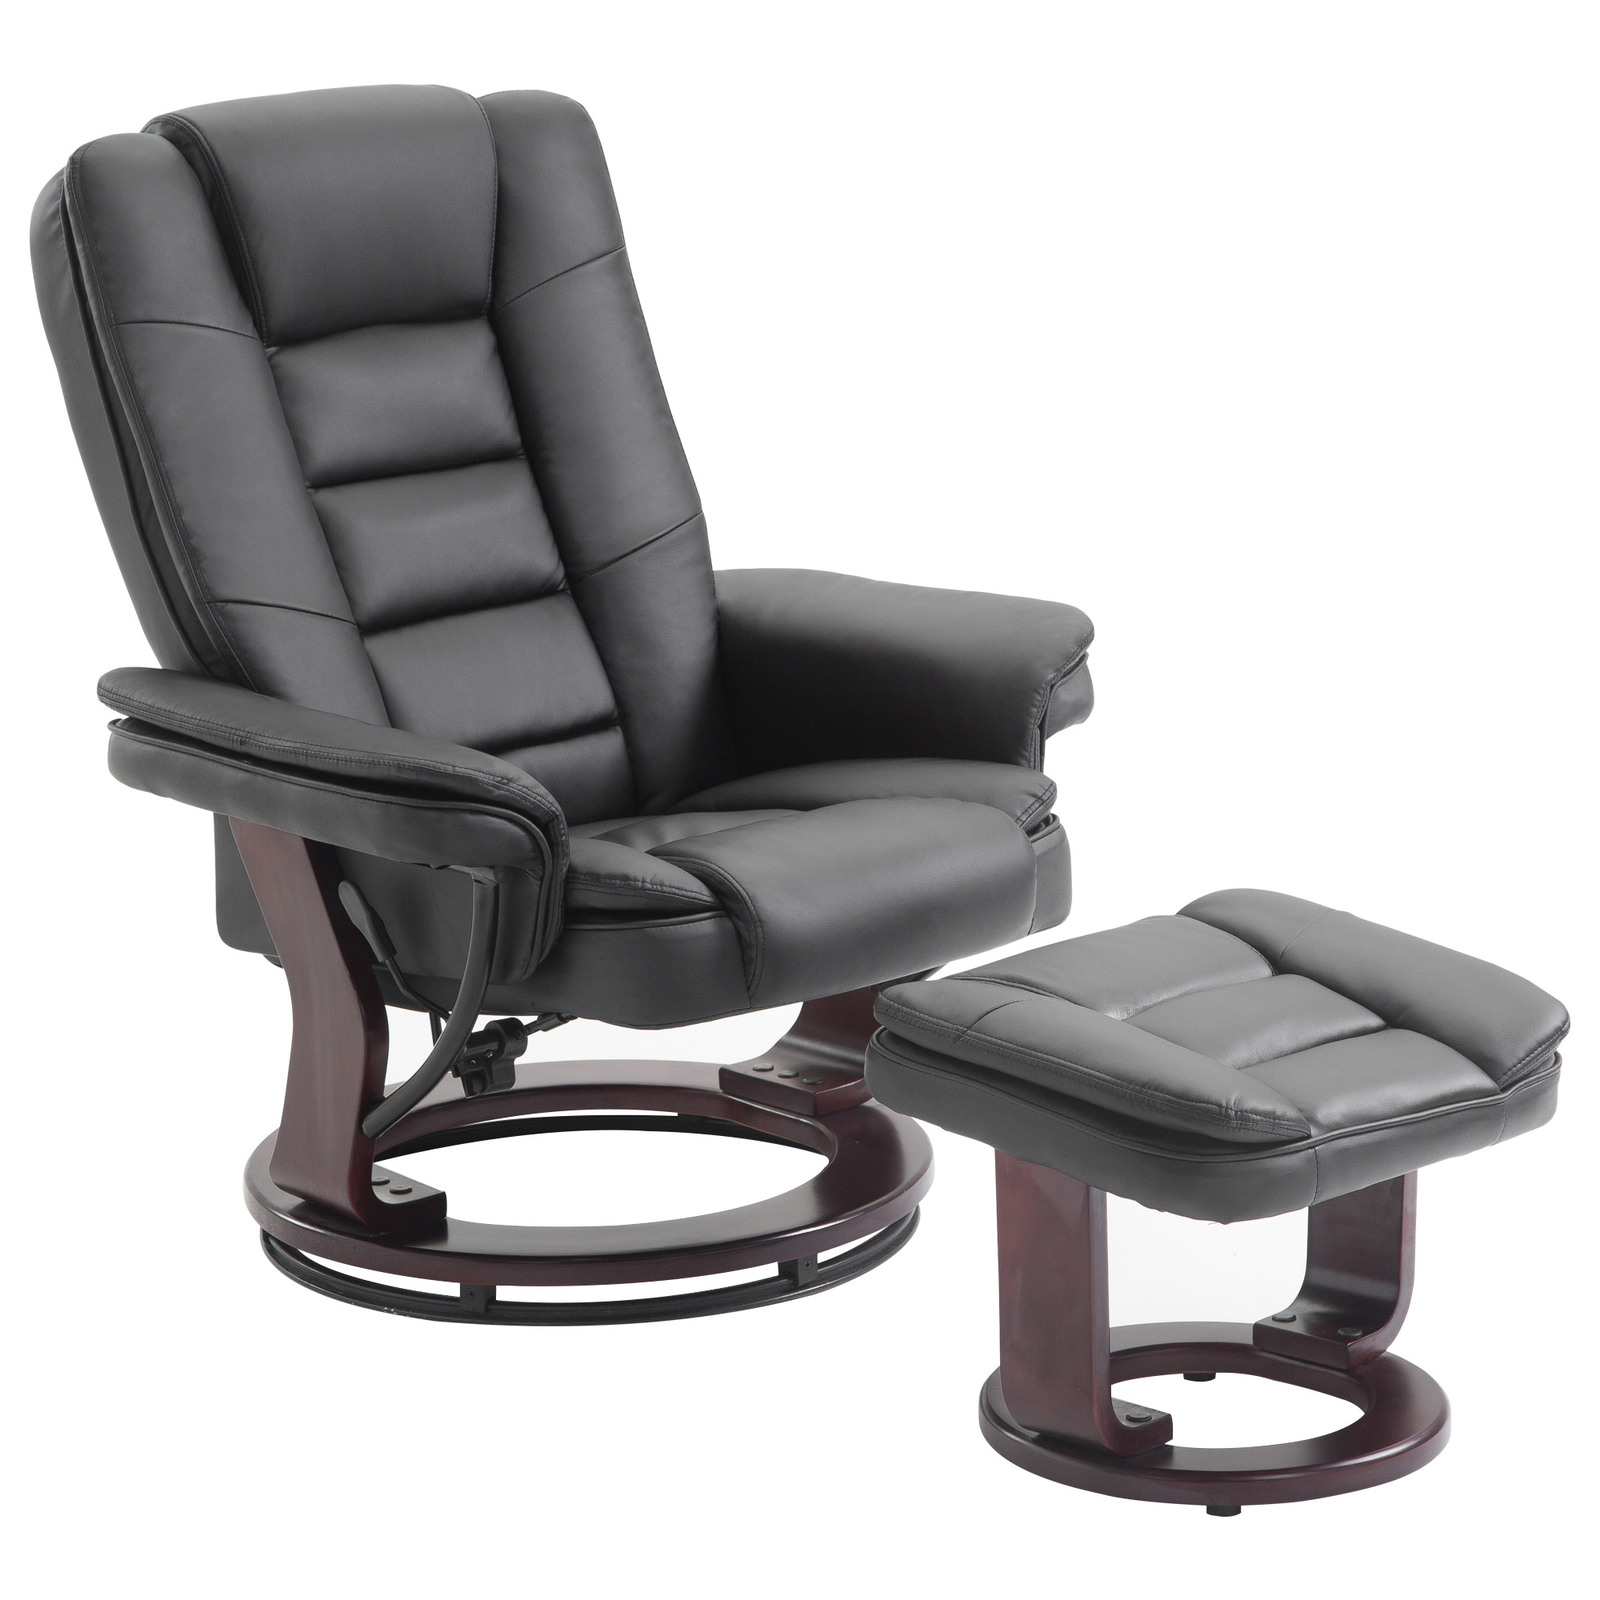 PU Leather Executive Leisure Recliner Chair Swivel Furniture w/ Ottoman Black